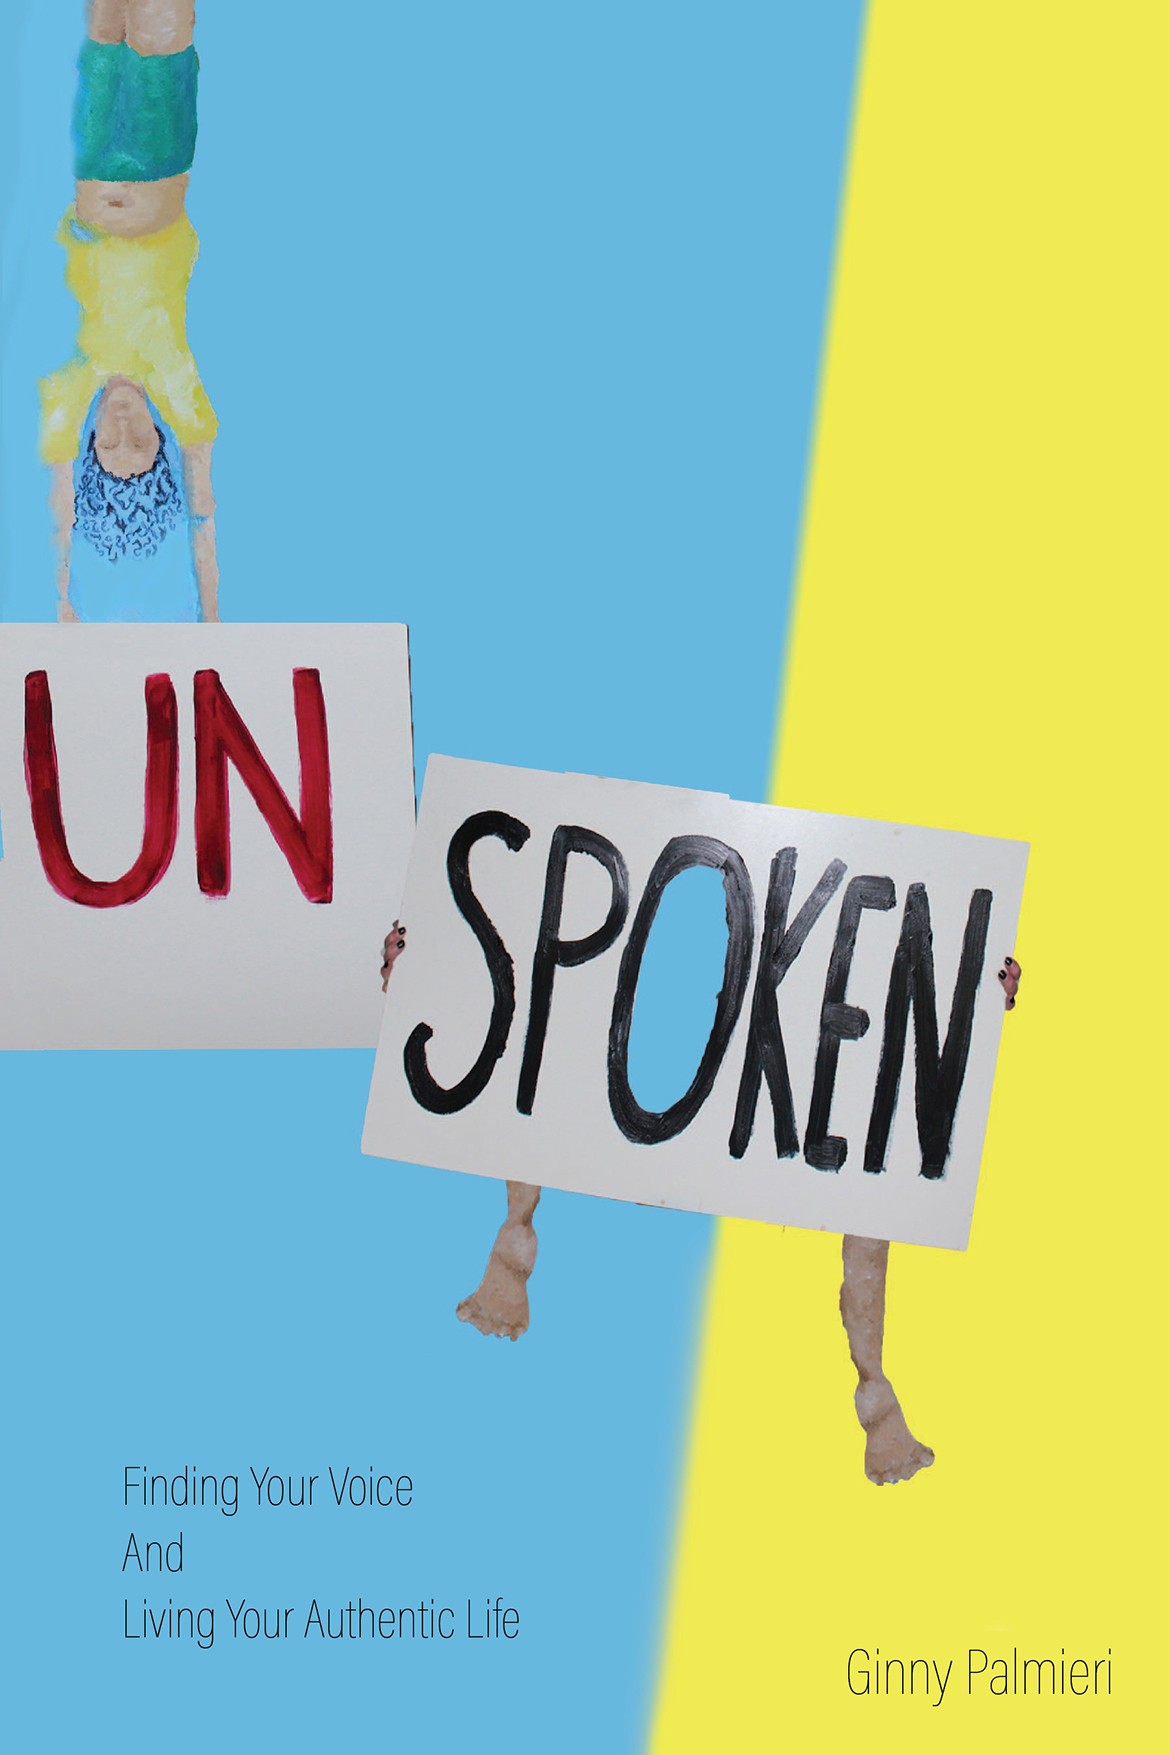 Unspoken: Finding Your Voice and Living Your Authentic Self by Ginny Palmieri